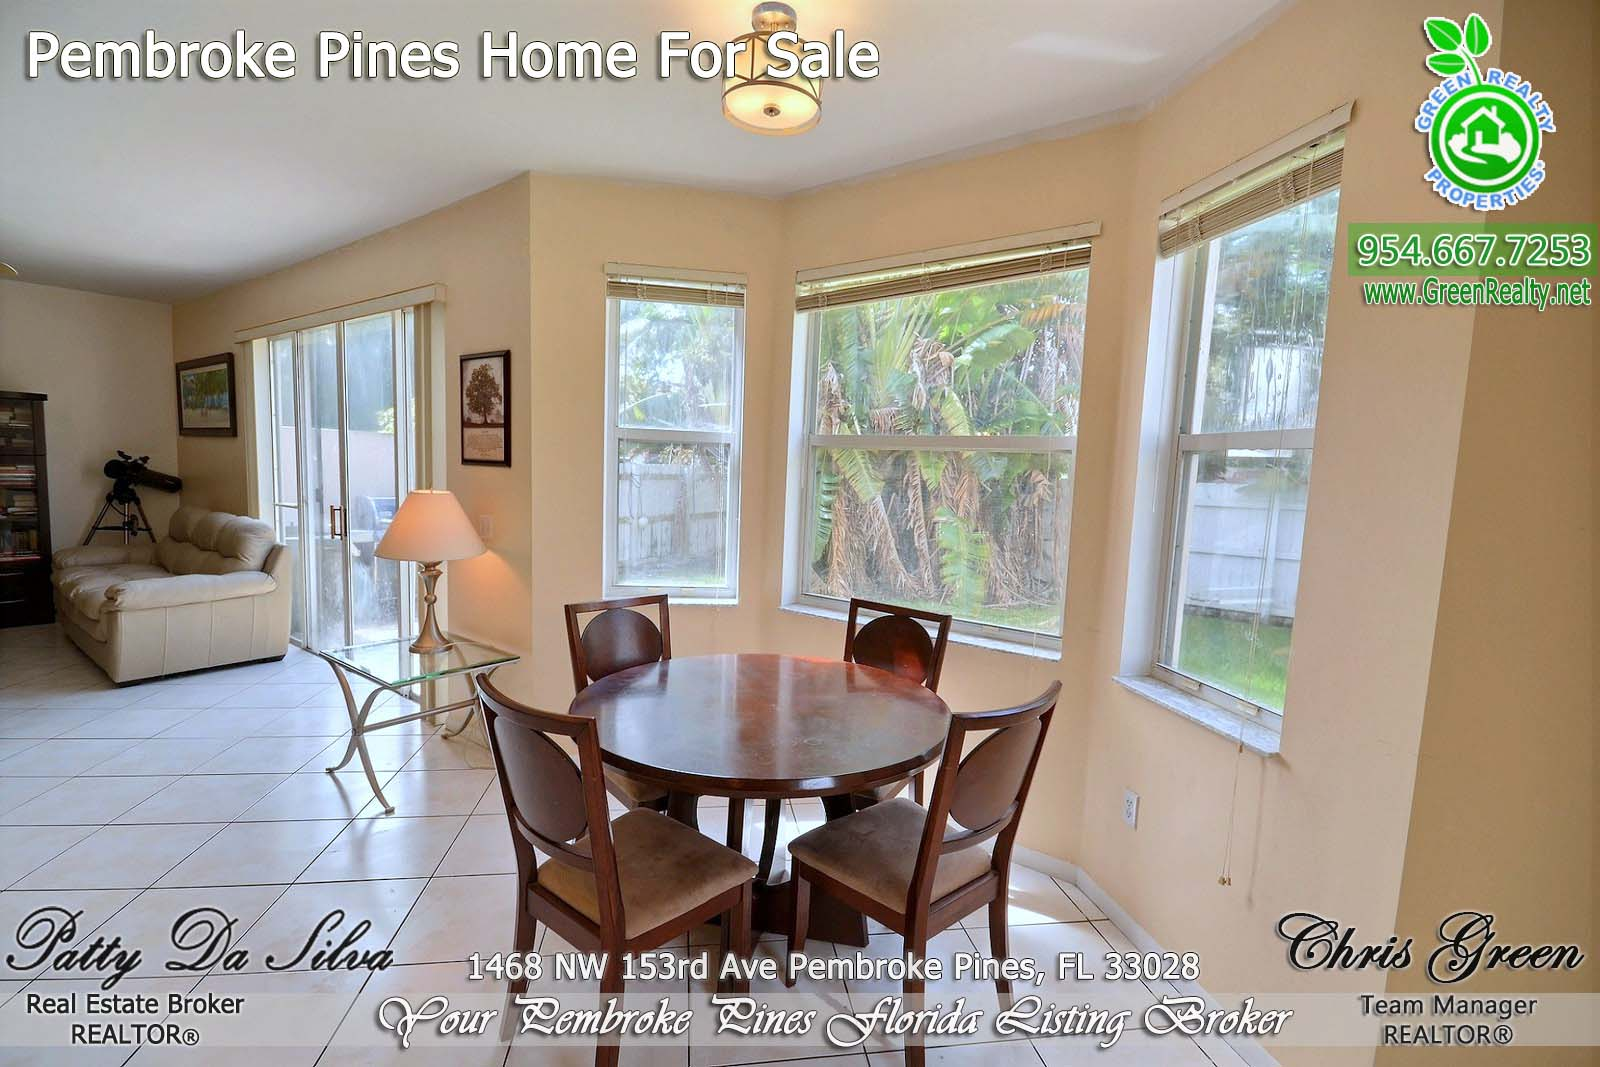 13 Homes For Sale in Pembroke Pines (1)